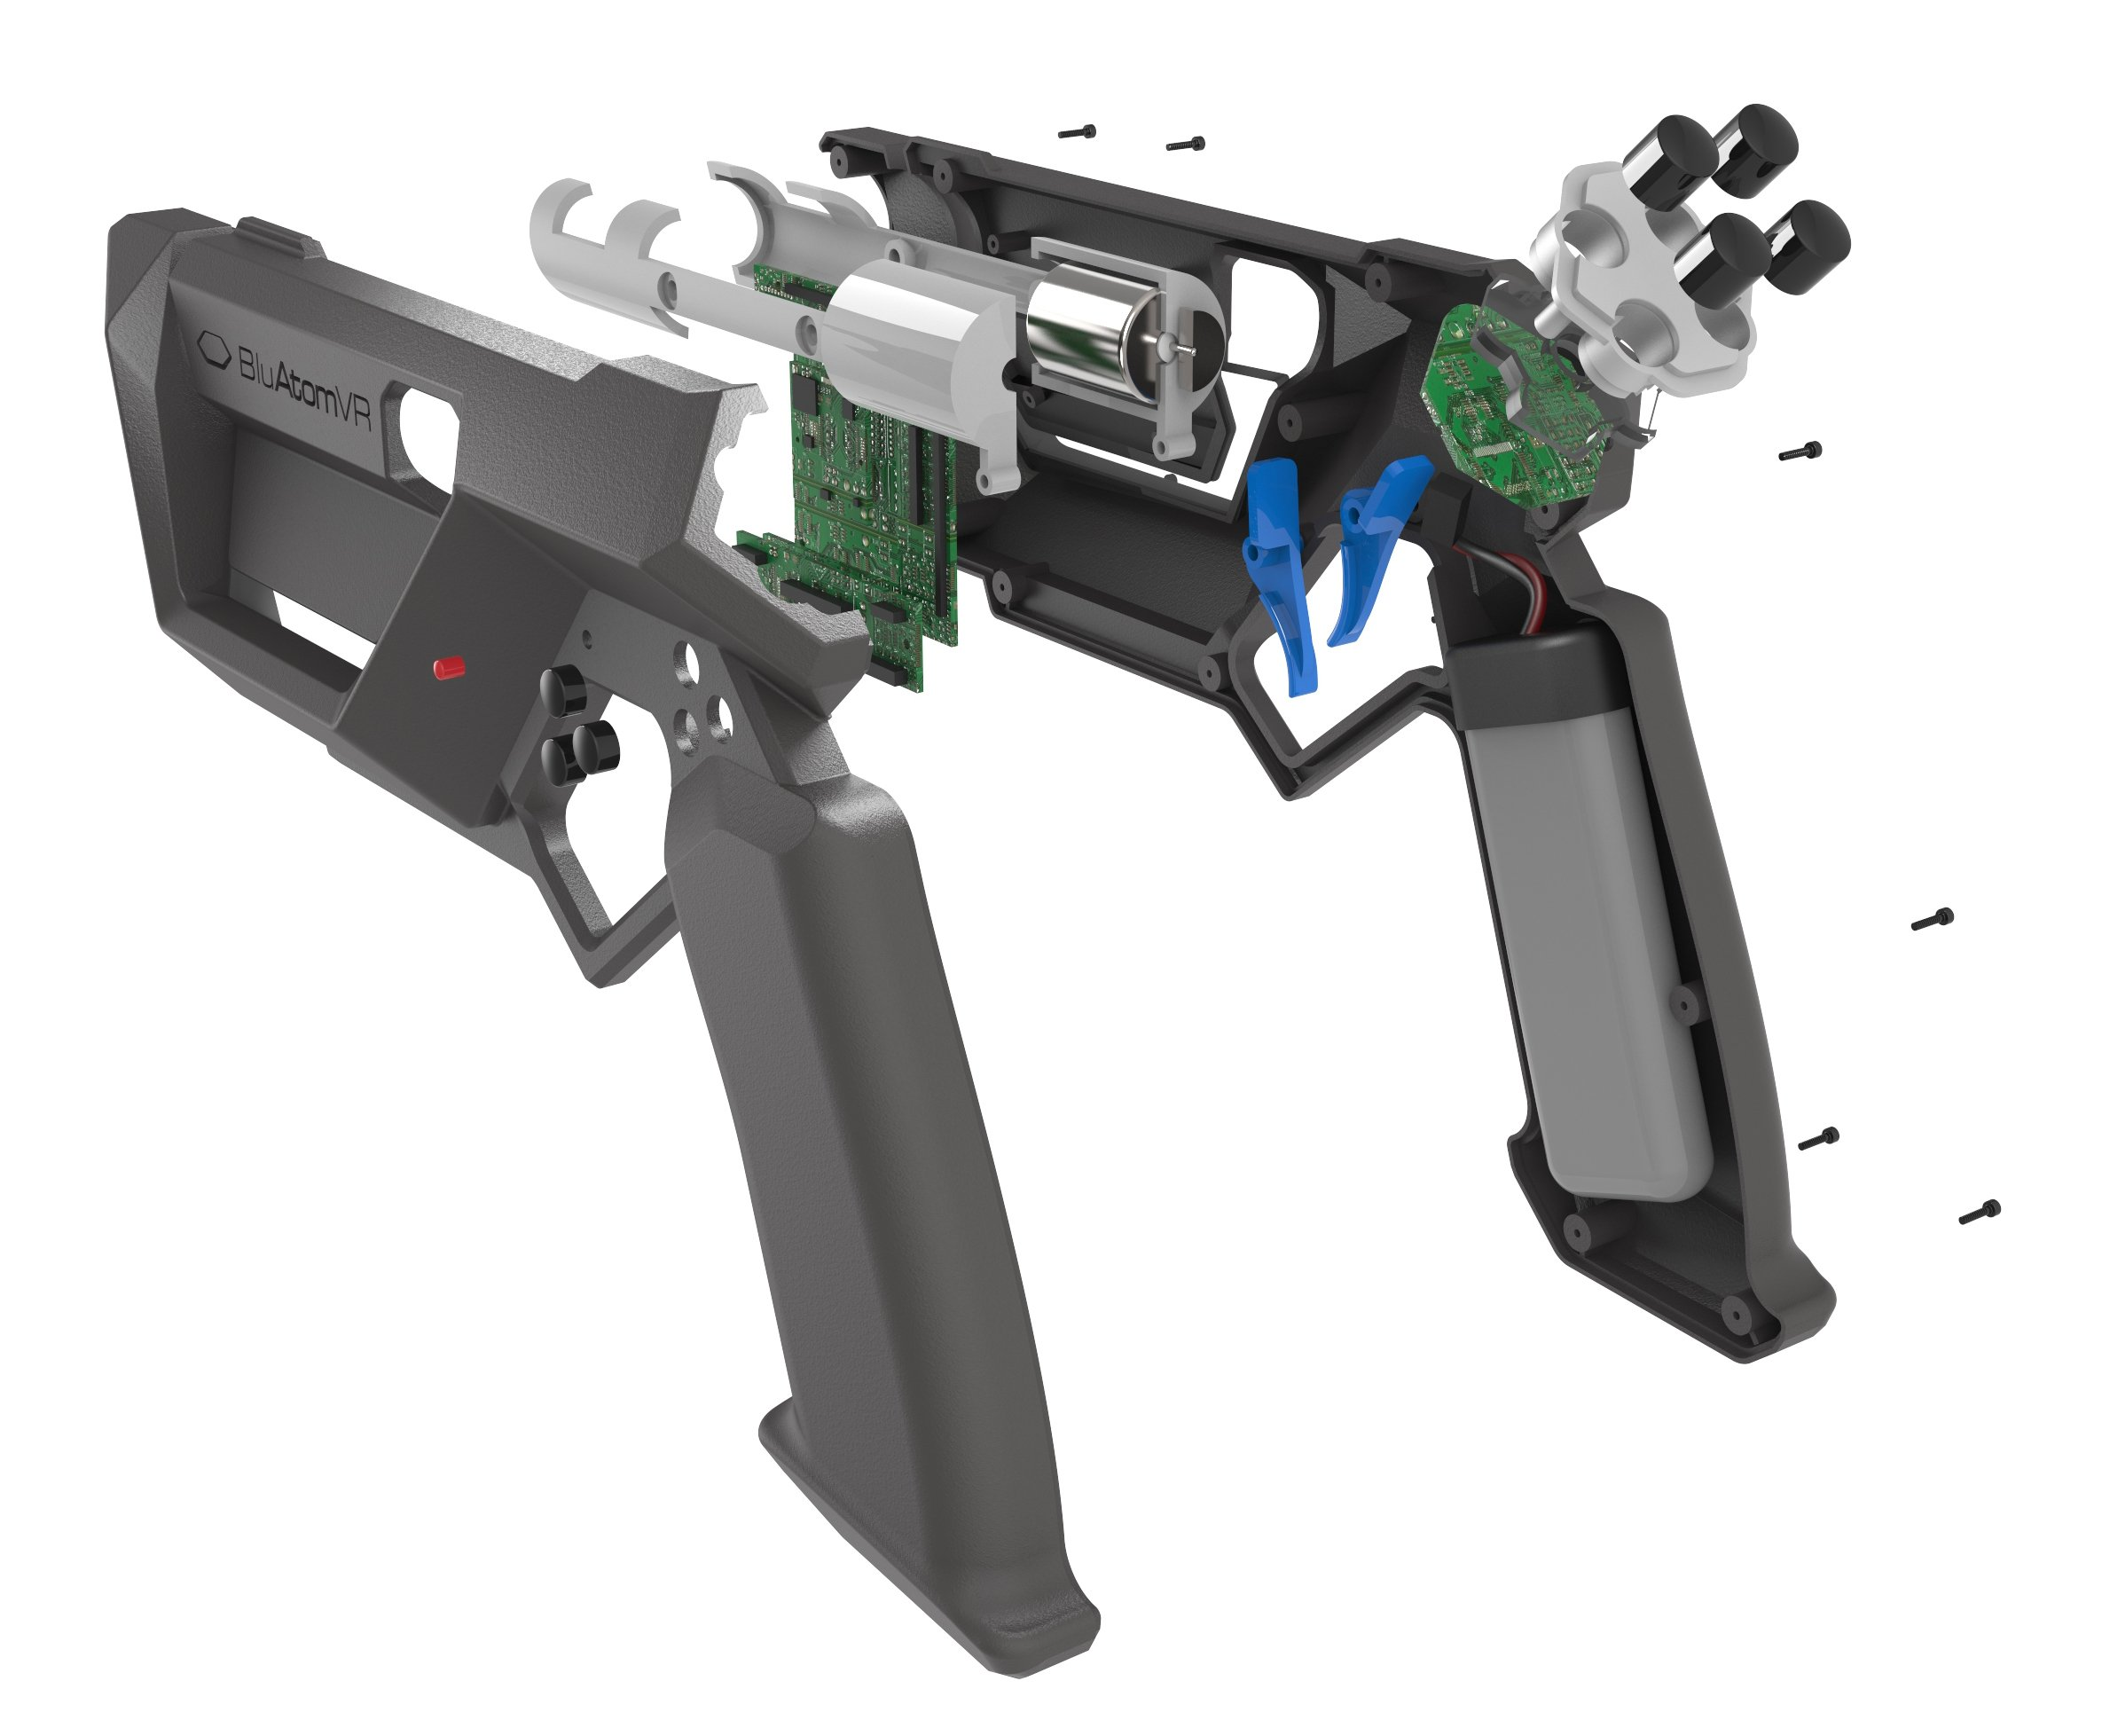 HTC Vive Virtual Reality gun controller – 3D CAD exploded view